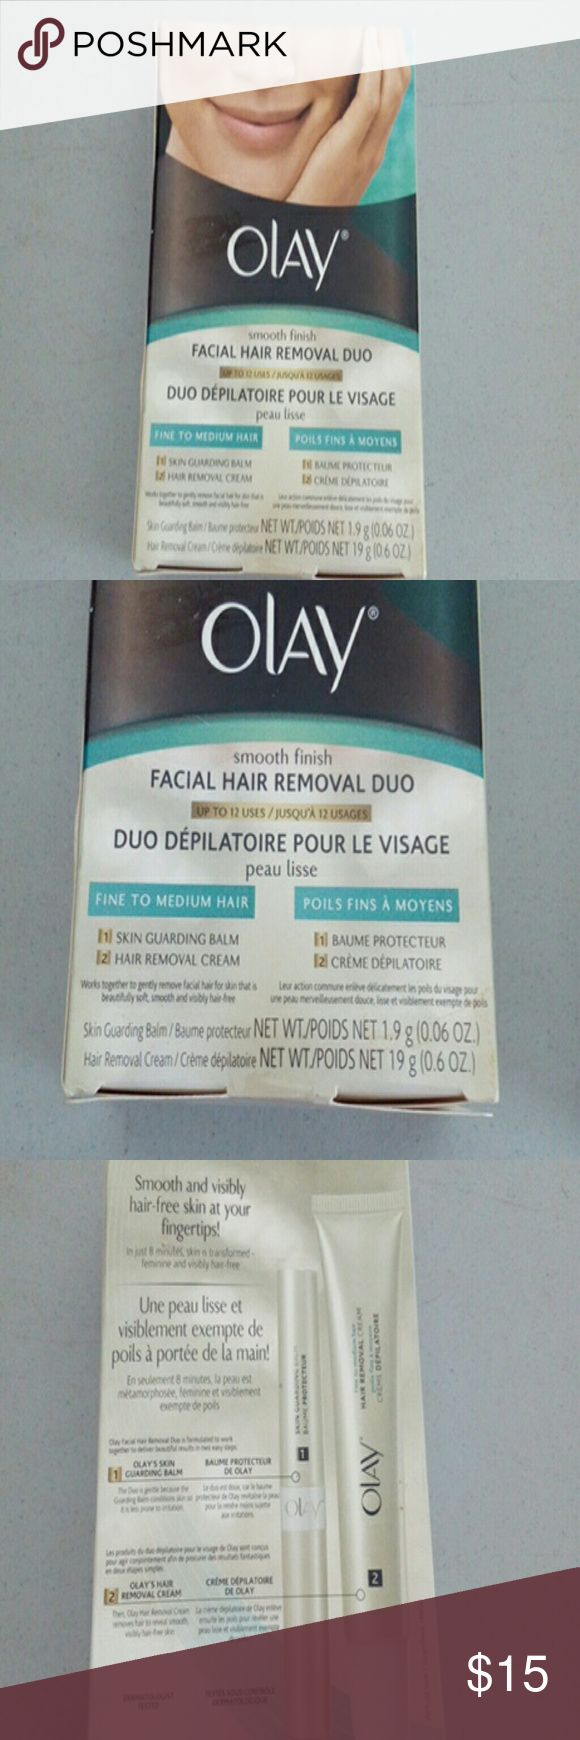 Olay Facial Hair Removal Duo 0.06 oz Fine to Med Skin balm & hair removal cream work together to gently facial hair for skin that is beautifully soft smooth and hair free Olay Other